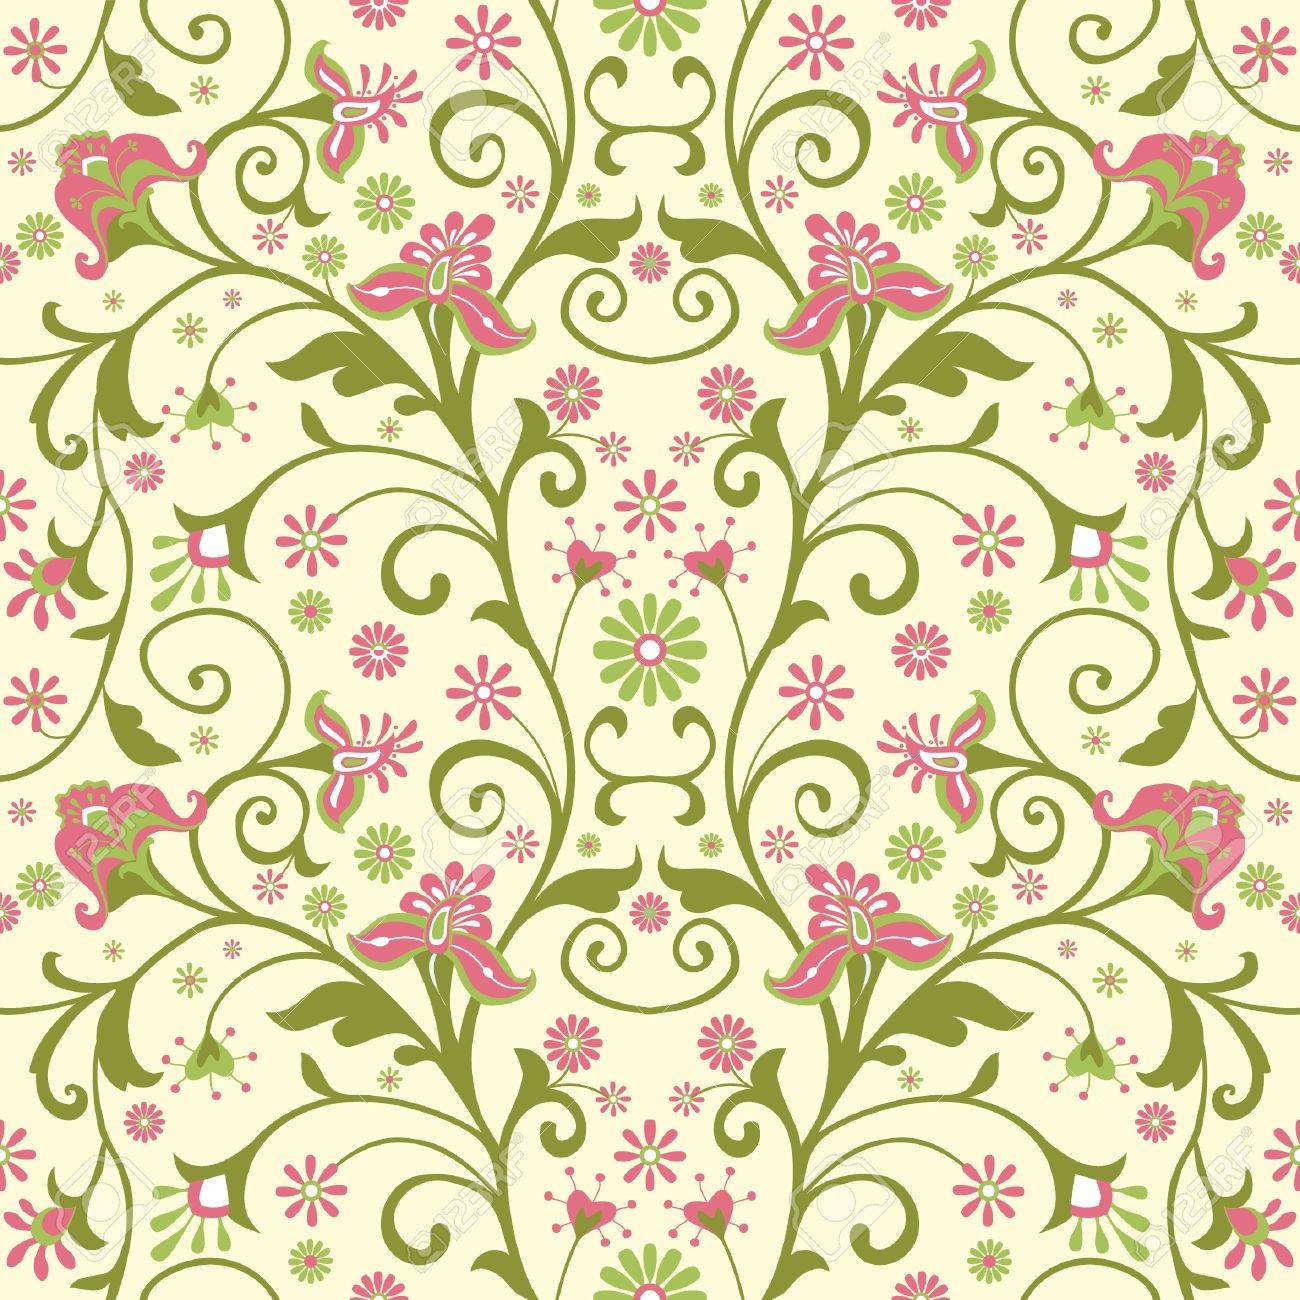 colorful floral wallpaper with decorative flowers seamless pattern stock vector 14898949 - Decorative Wallpaper